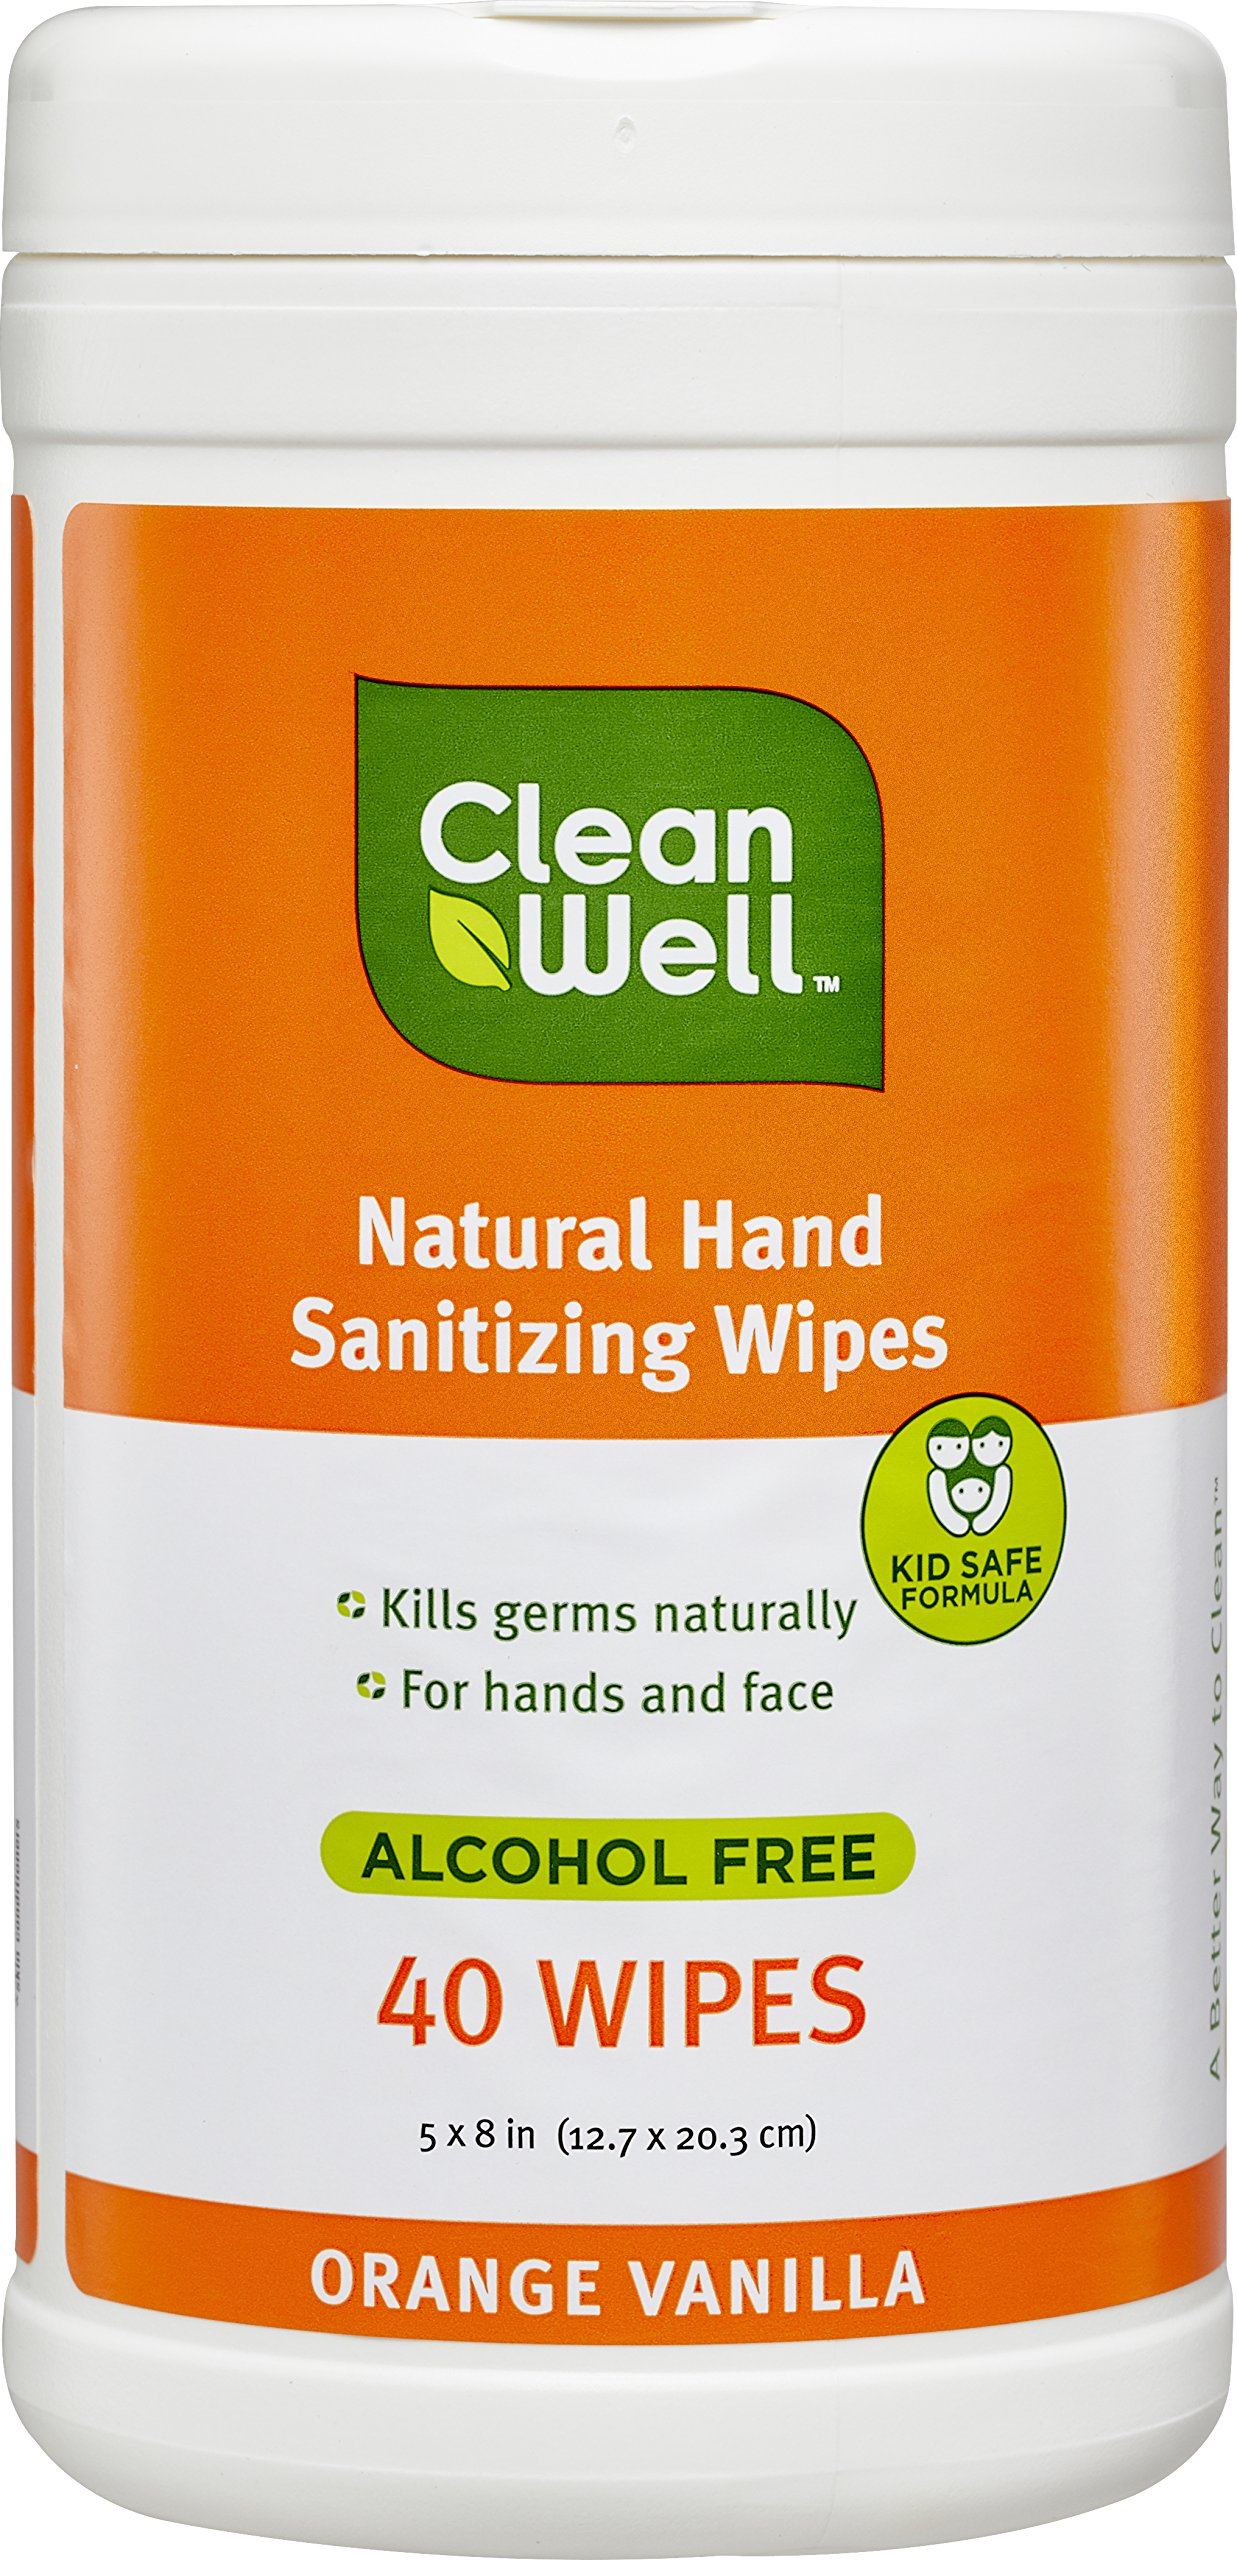 CleanWell Botanical Hand Sanitizing Wipes Canister - Orange Vanilla Scent, 40 Count - plant-based, alcohol-free, kid friendly, kills germs botanically